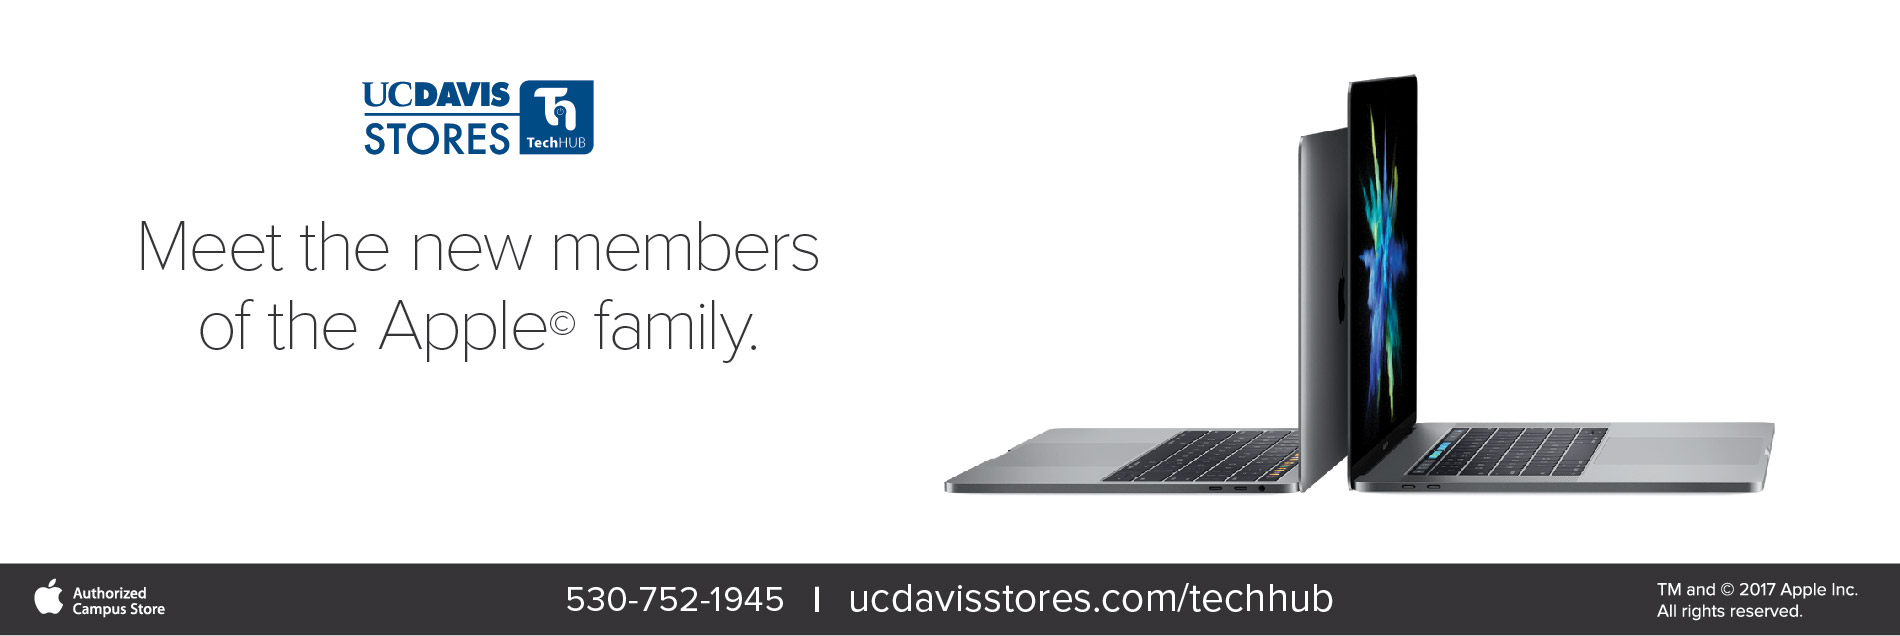 Come meet all of the members of the Mac family at the UC Davis Stores TechHub